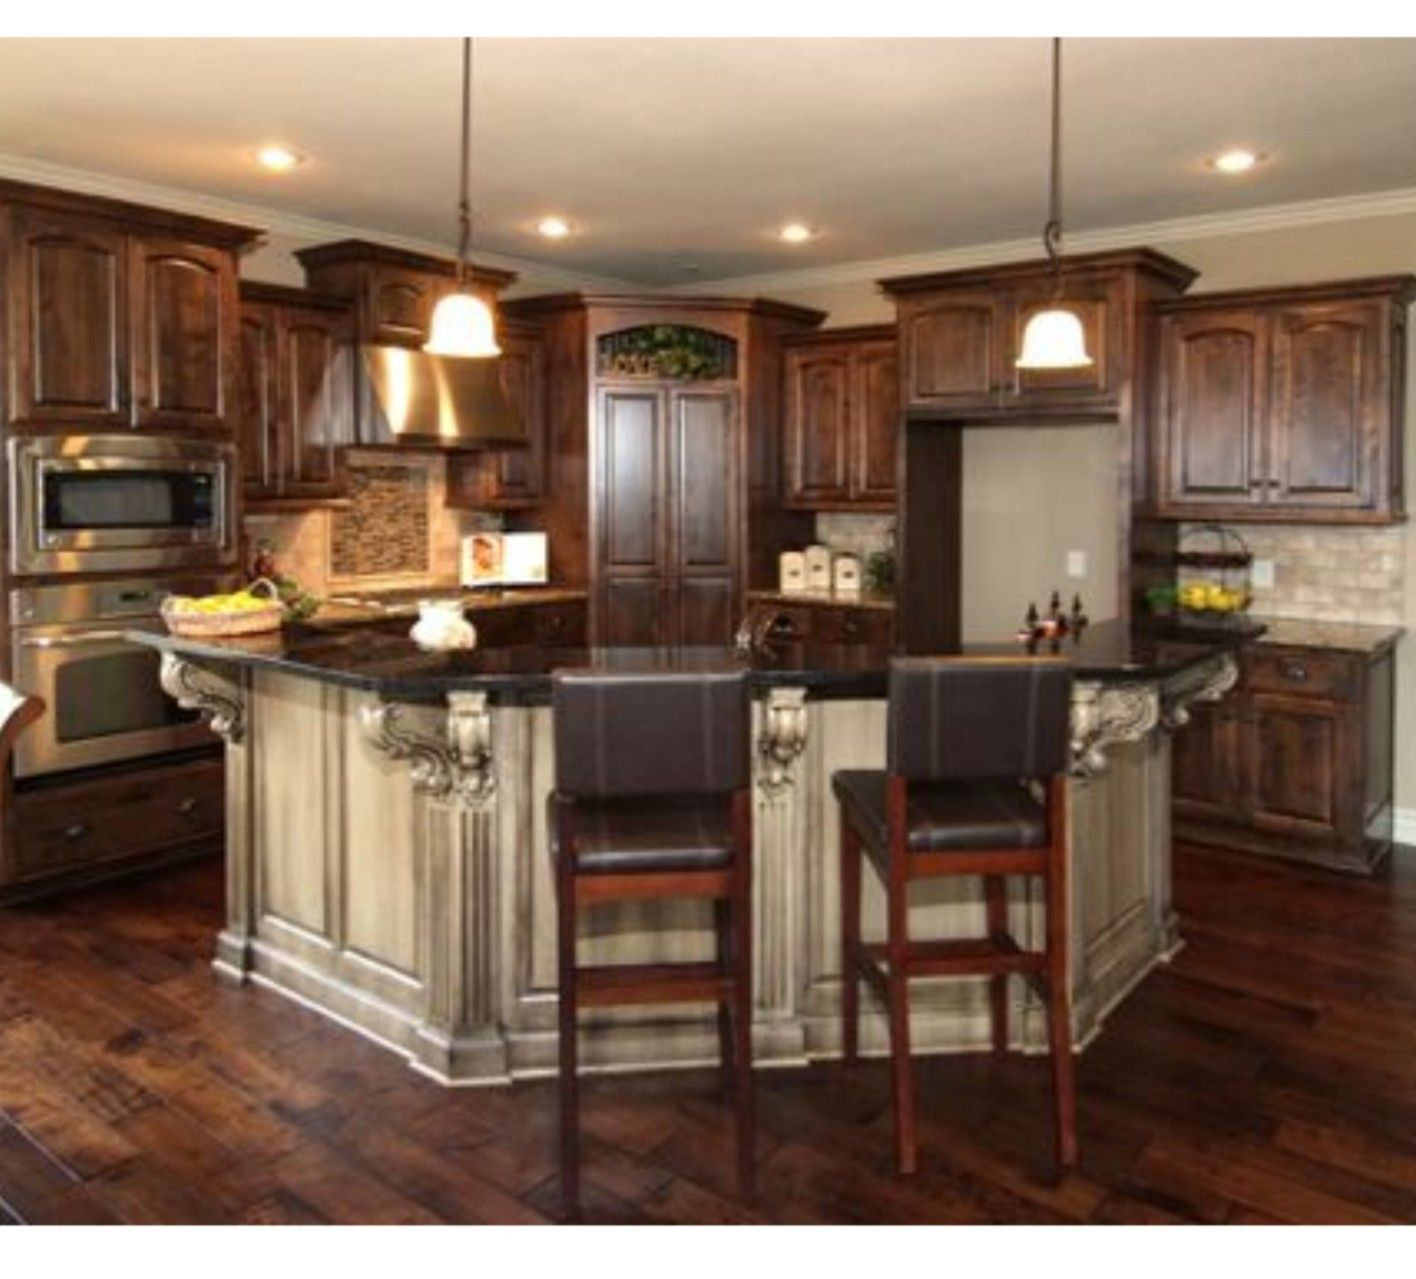 43 Kitchens with Extensive Dark Wood Throughout | Natural flooring ...